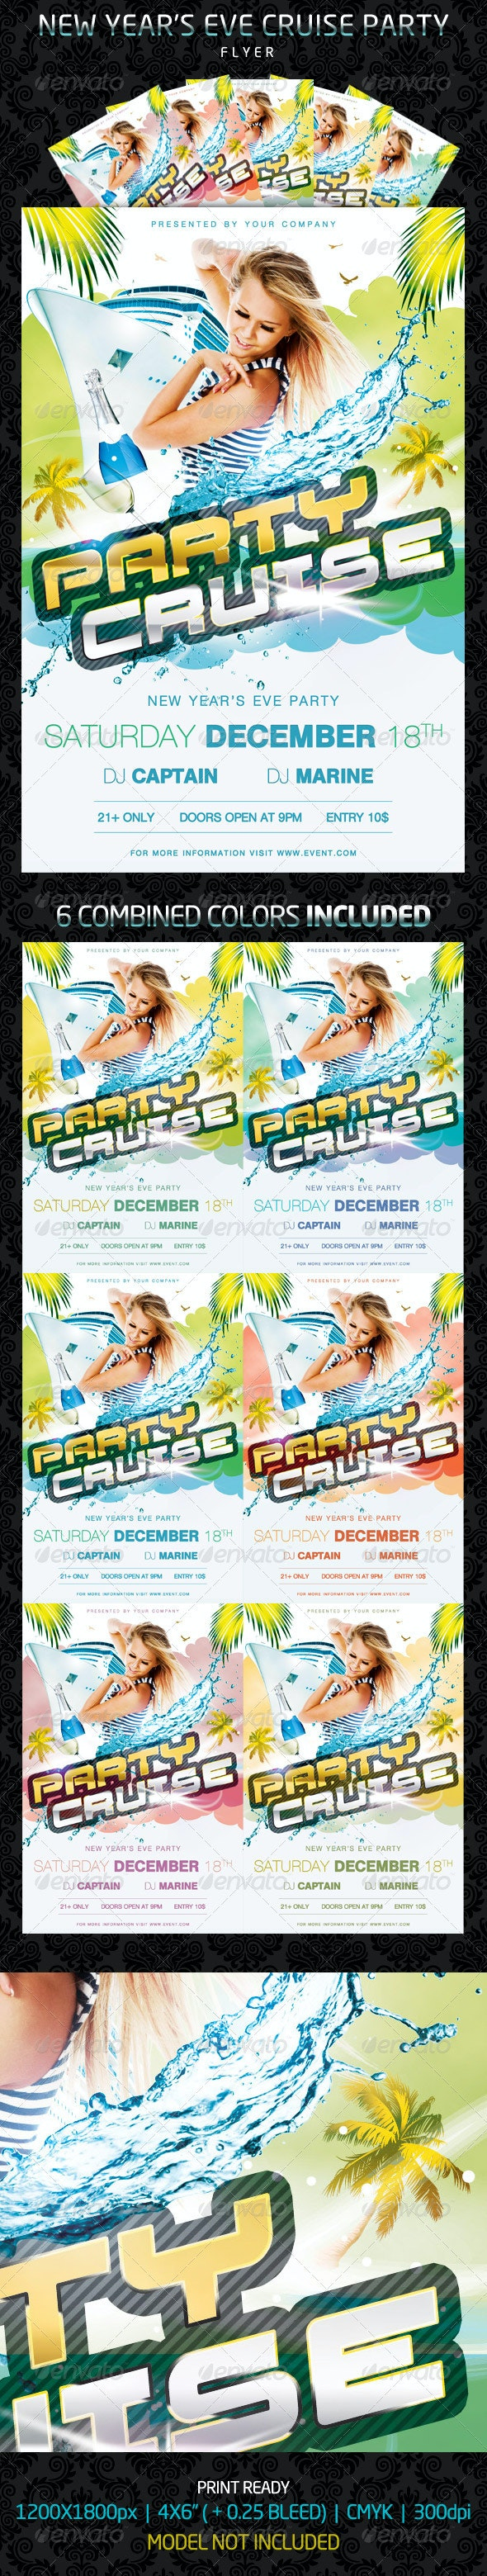 Party Cruise Flyer - Clubs & Parties Events